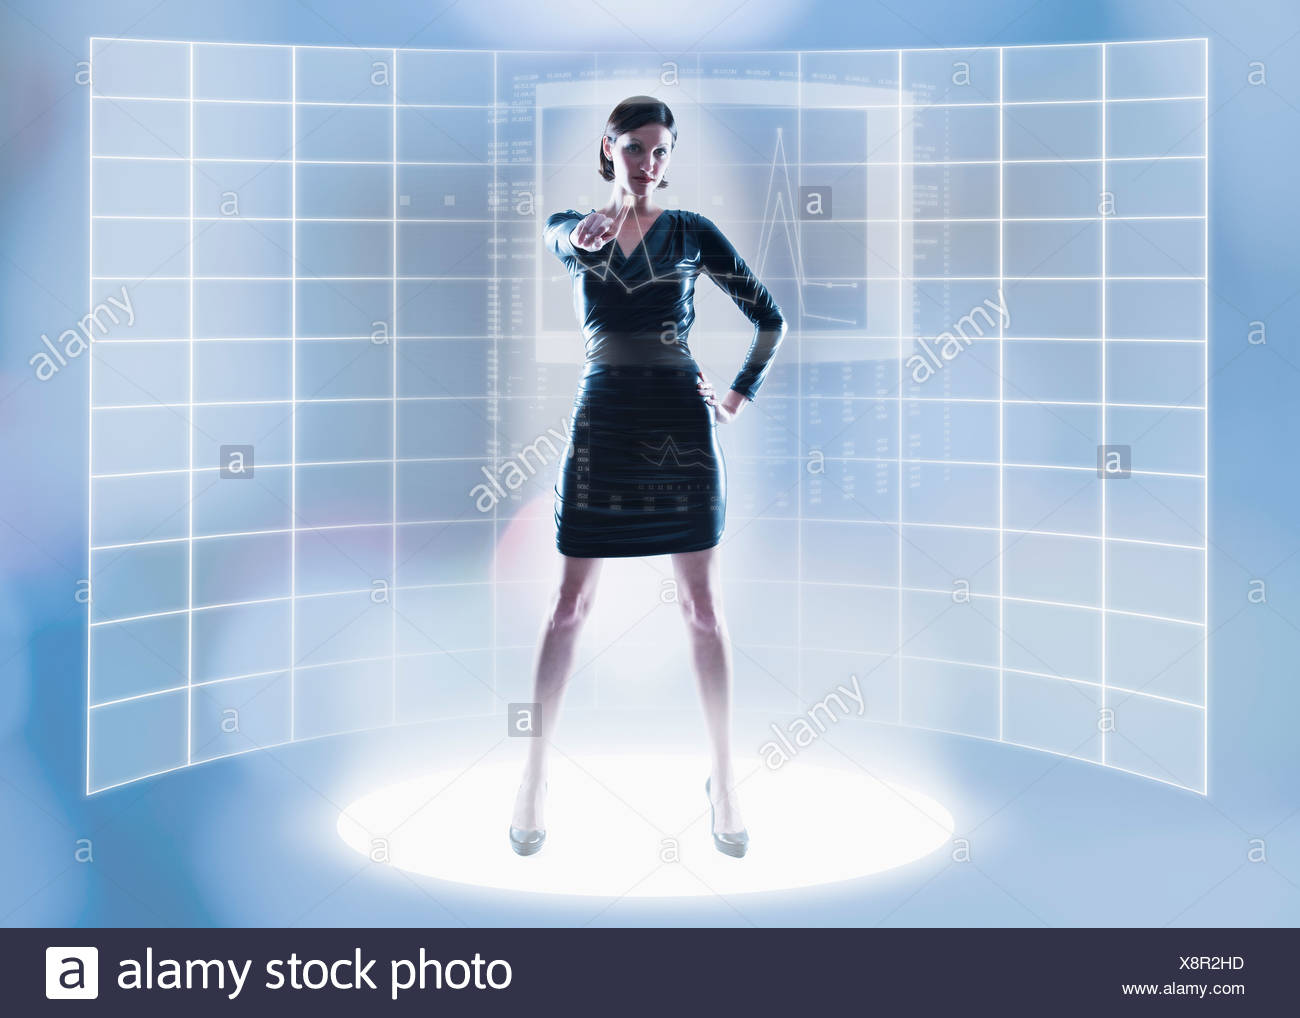 Woman pointing in front of grid pattern - Stock Image